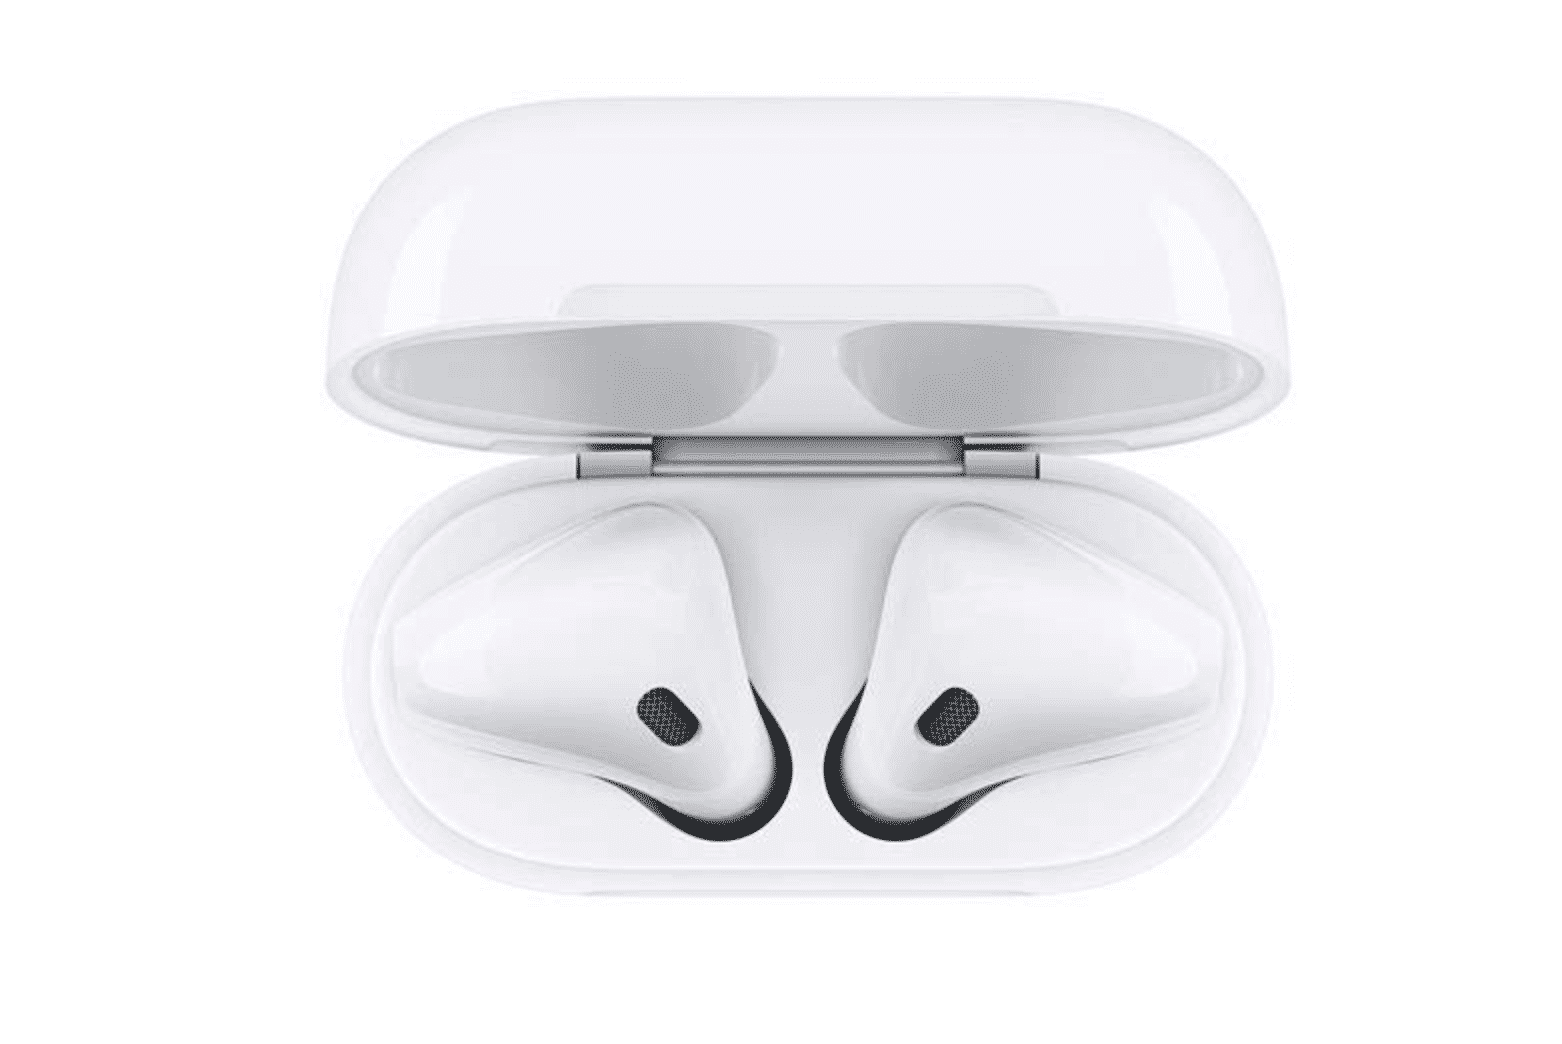 Grab Your AirPods with Wireless Charging Case While It's Still On Sale